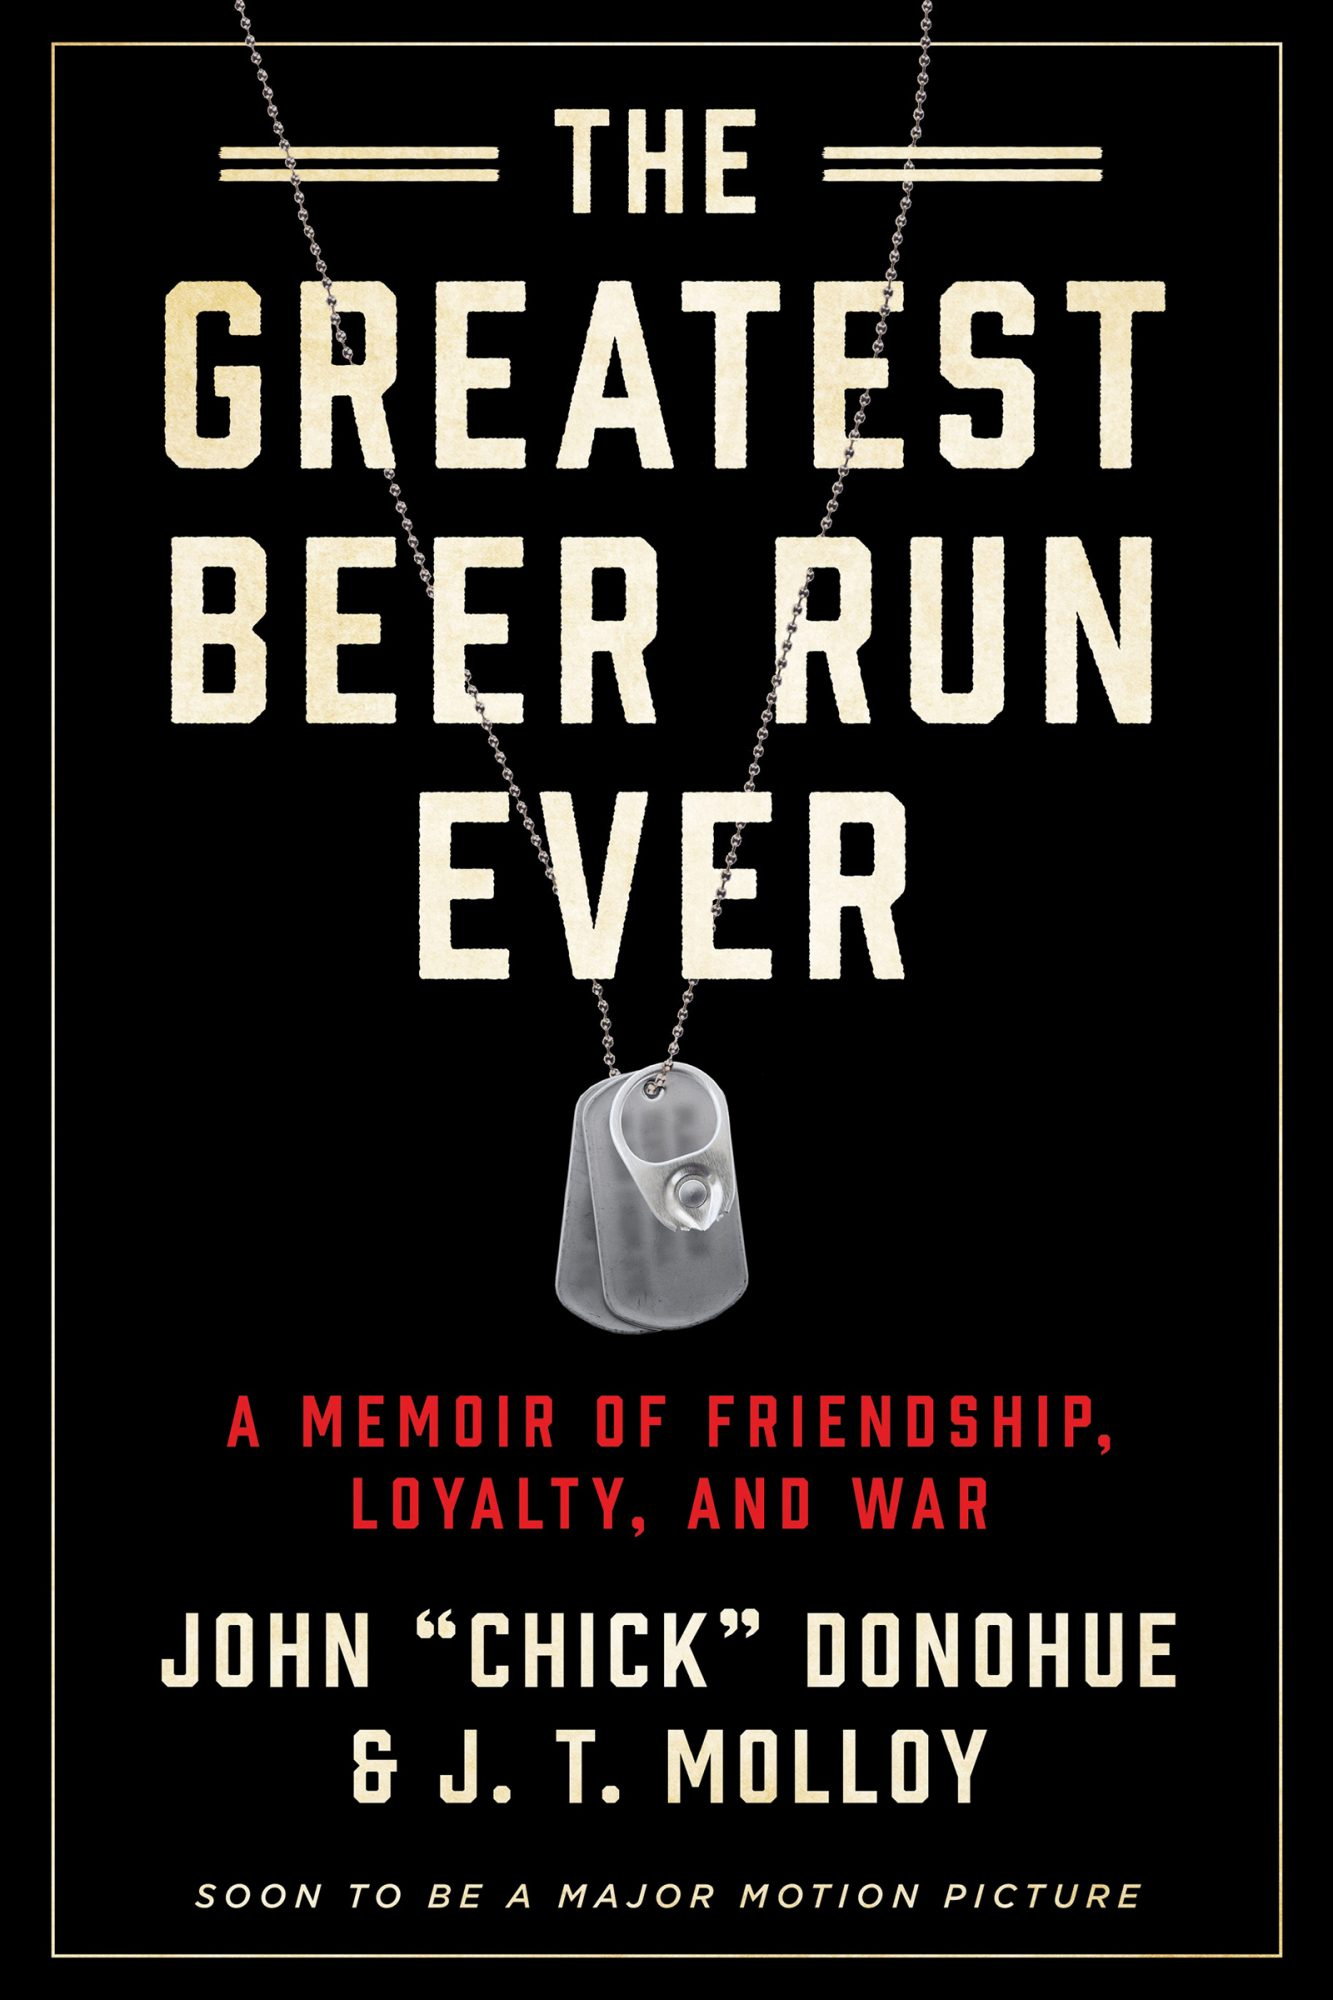 The Greatest Beer Run Ever by John 'Chick' Donohue